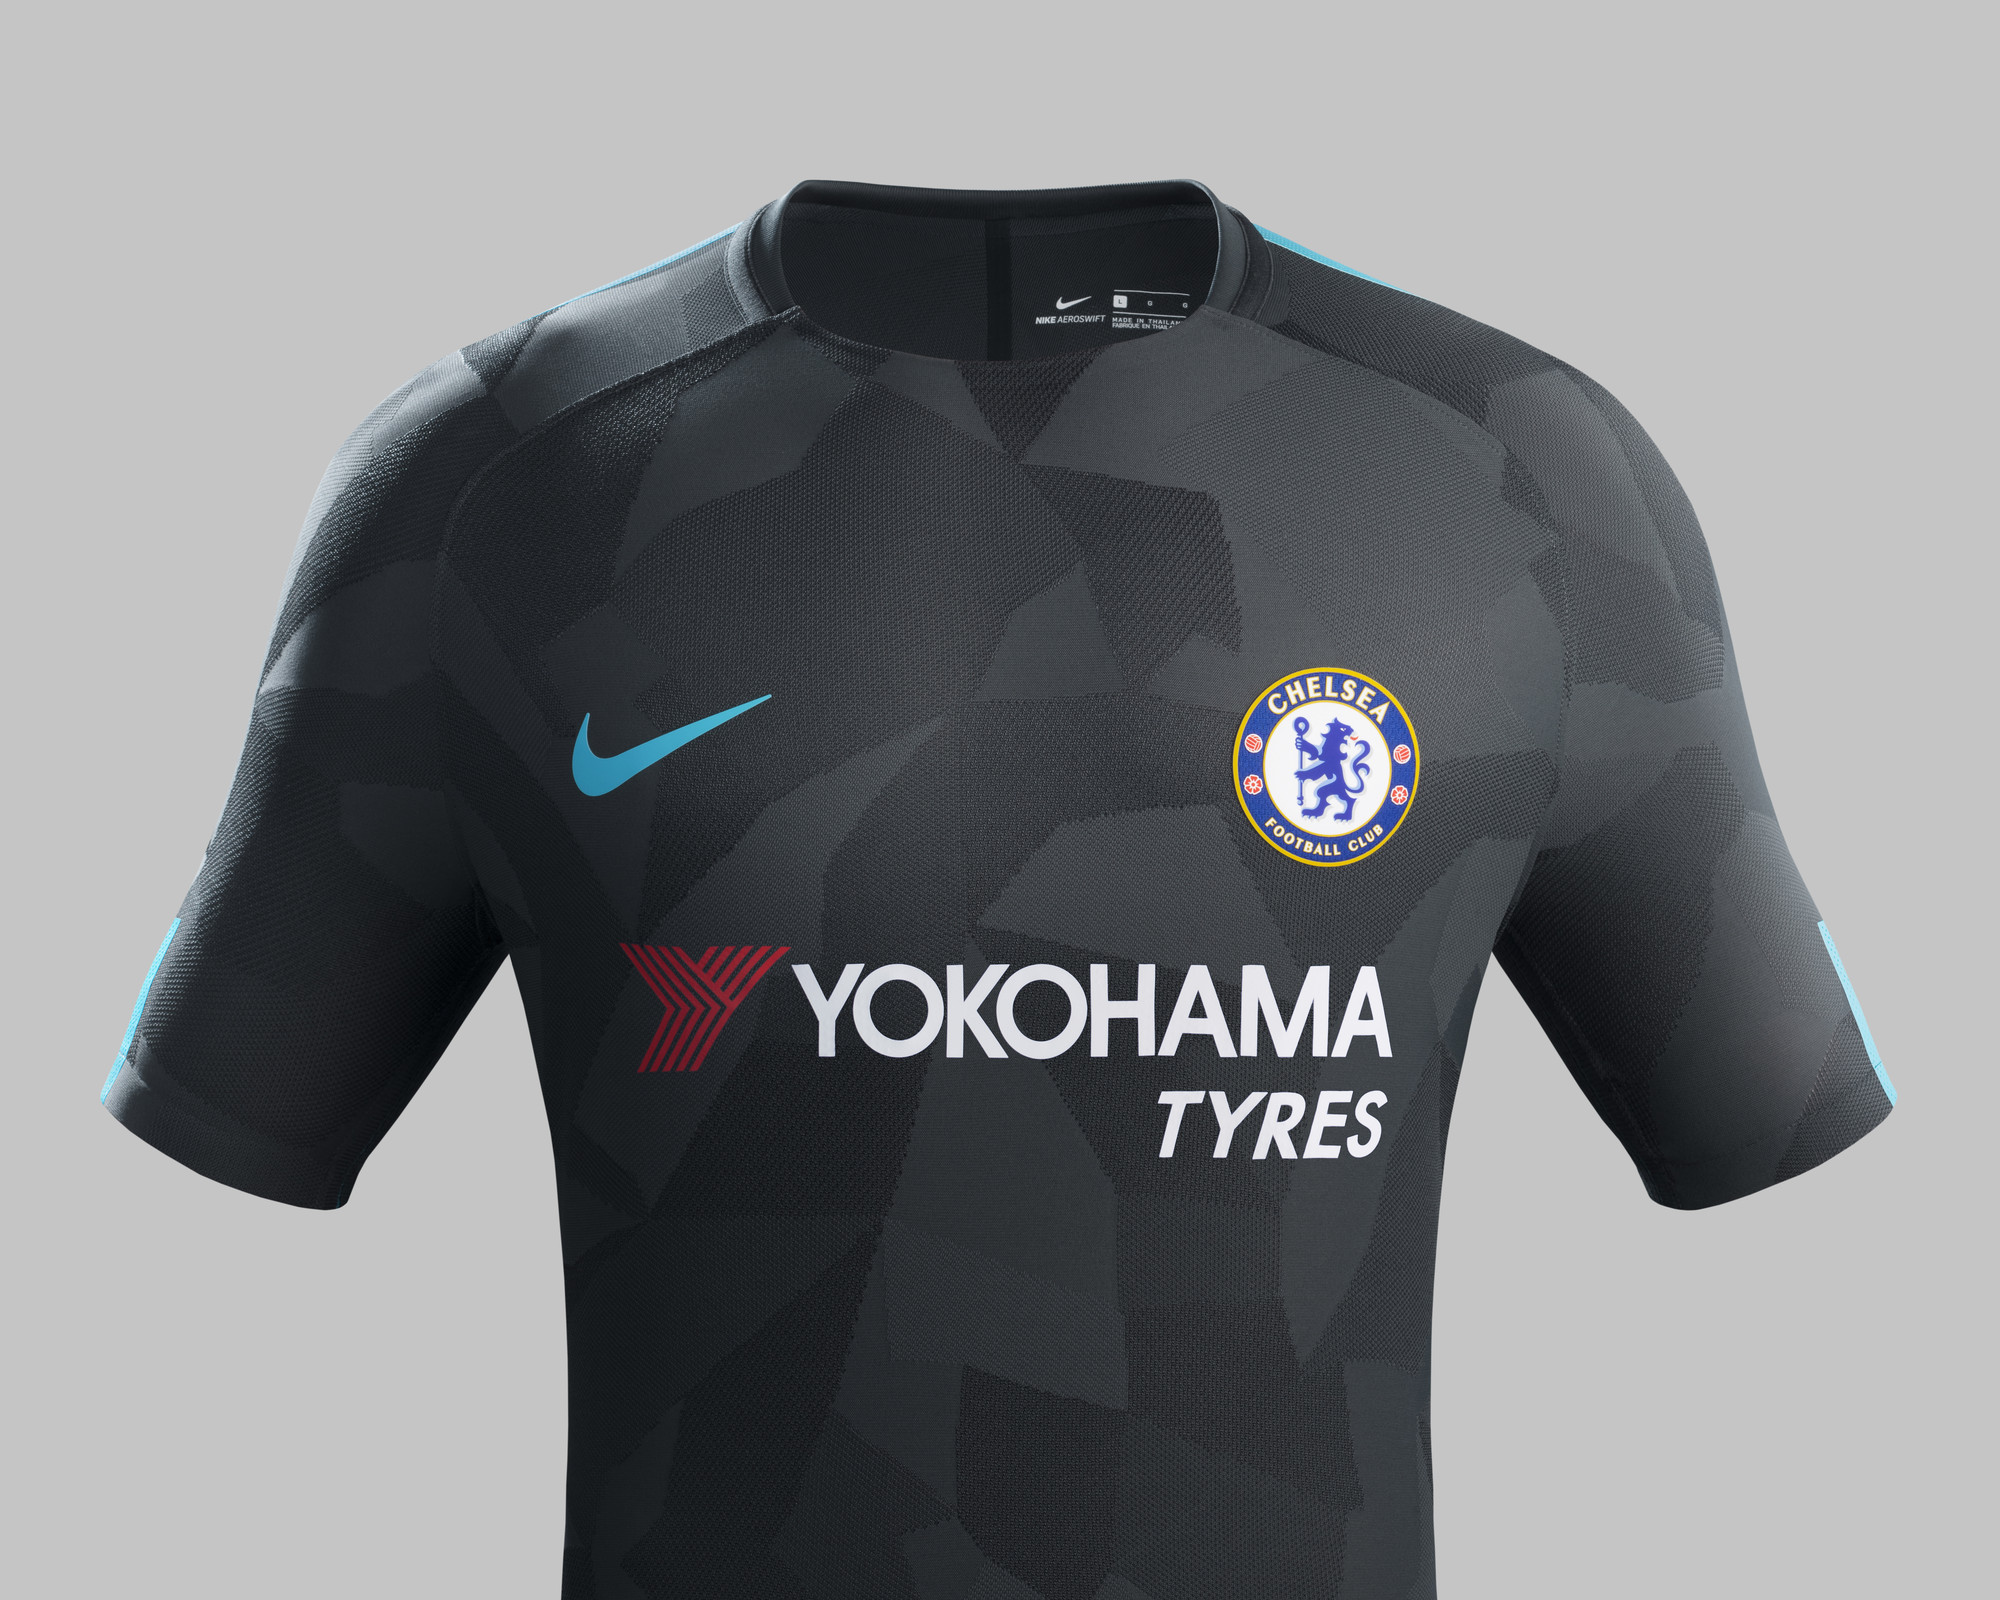 Chelsea FC 2017-18 third kit official promo images | Nike